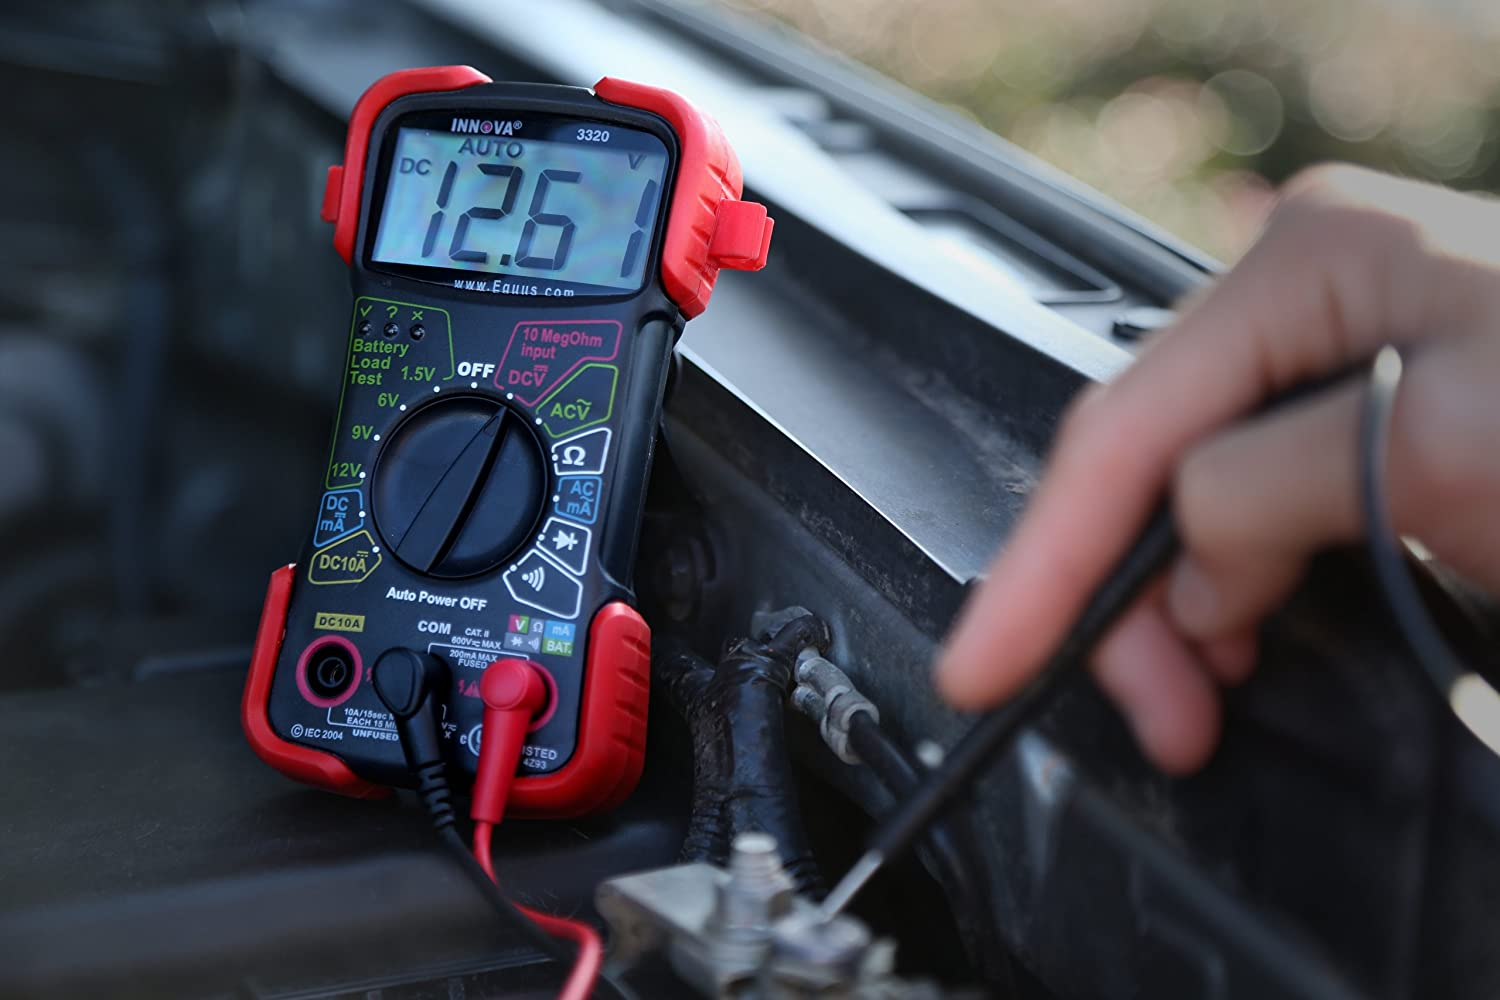 Innova 3320 Auto Ranging Digital Multimeter Automotive Battery Load Test Electronics And Electrical Engineering Design